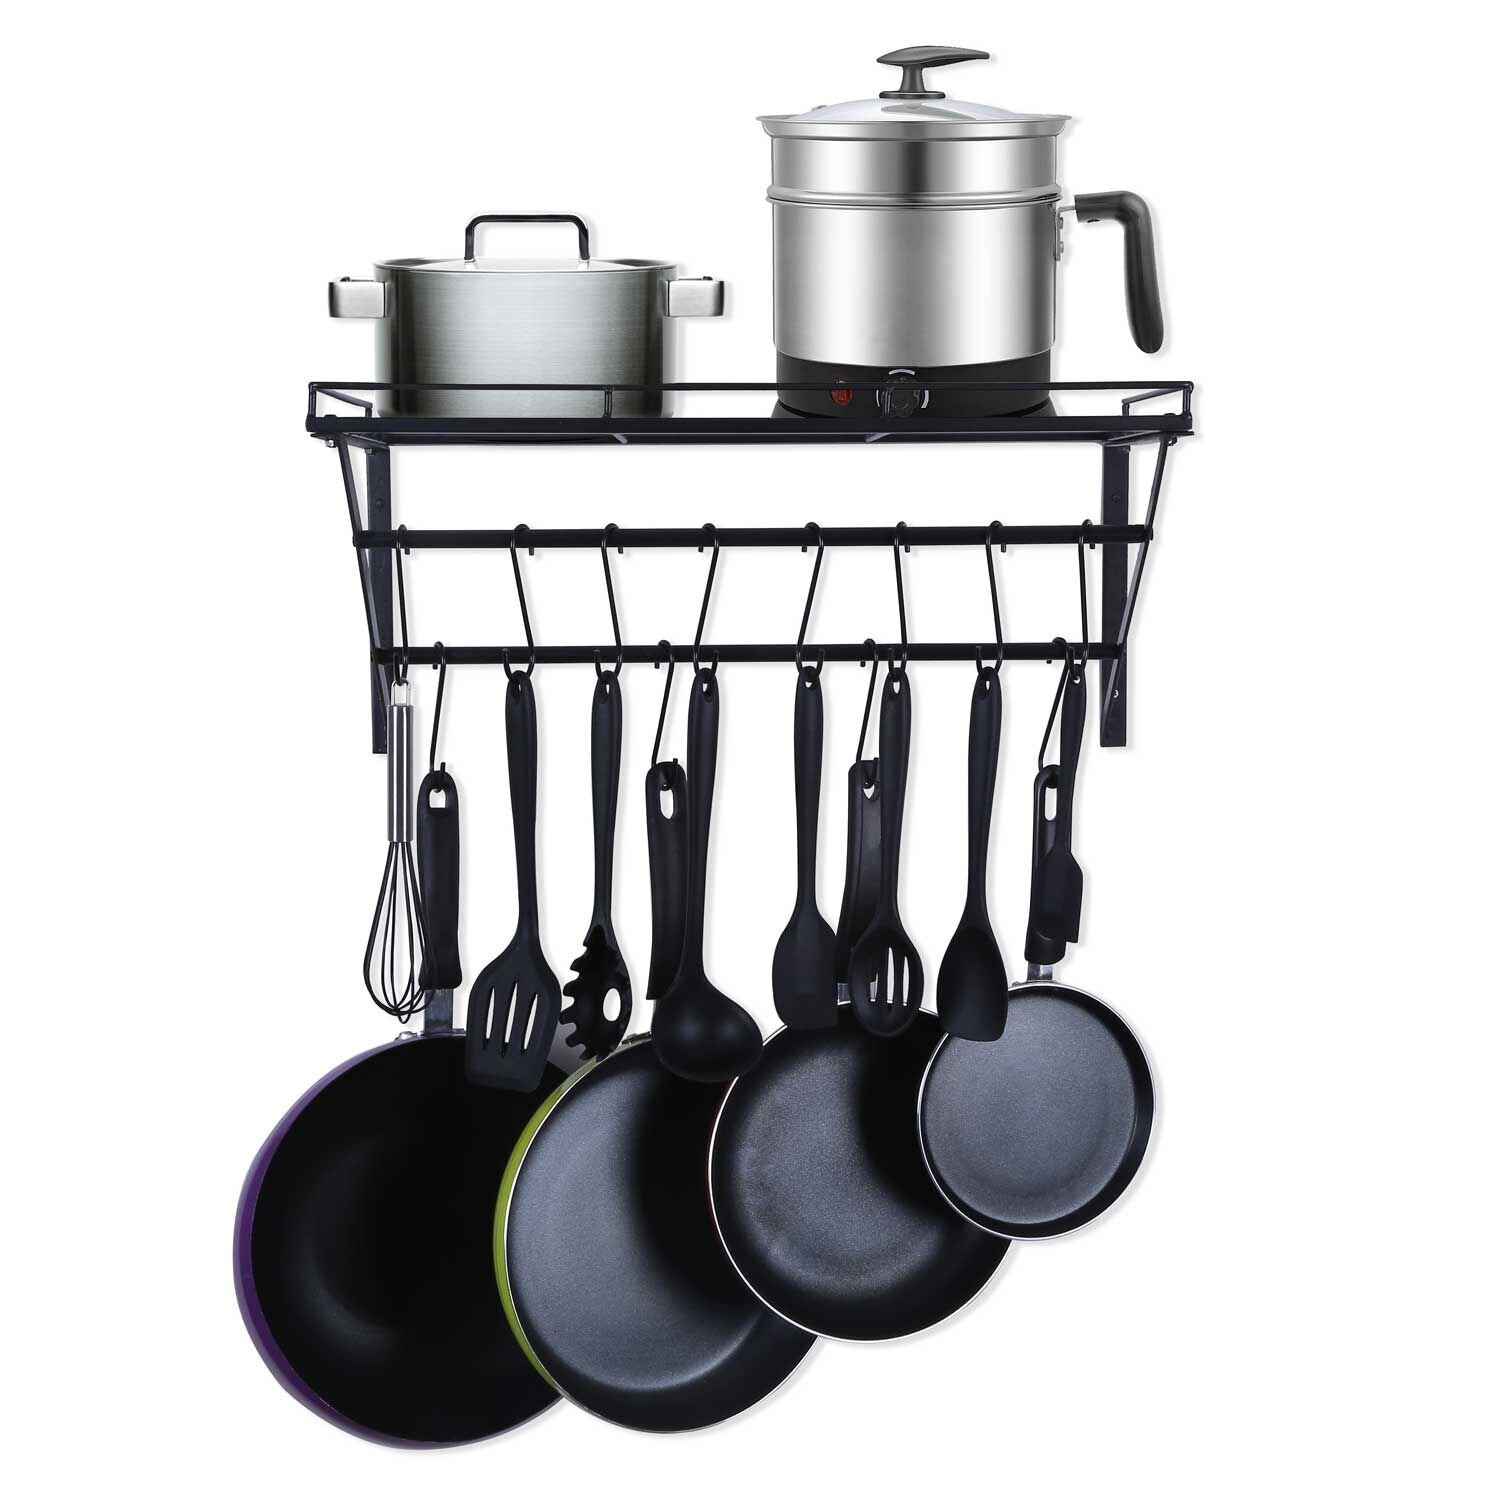 Oropy Wall Mount Hanging Pot Rack Steel Cookware Organizer with Storage Shelf 12 S Hooks included, Ideal for Pans, Utensils, Books, Plant